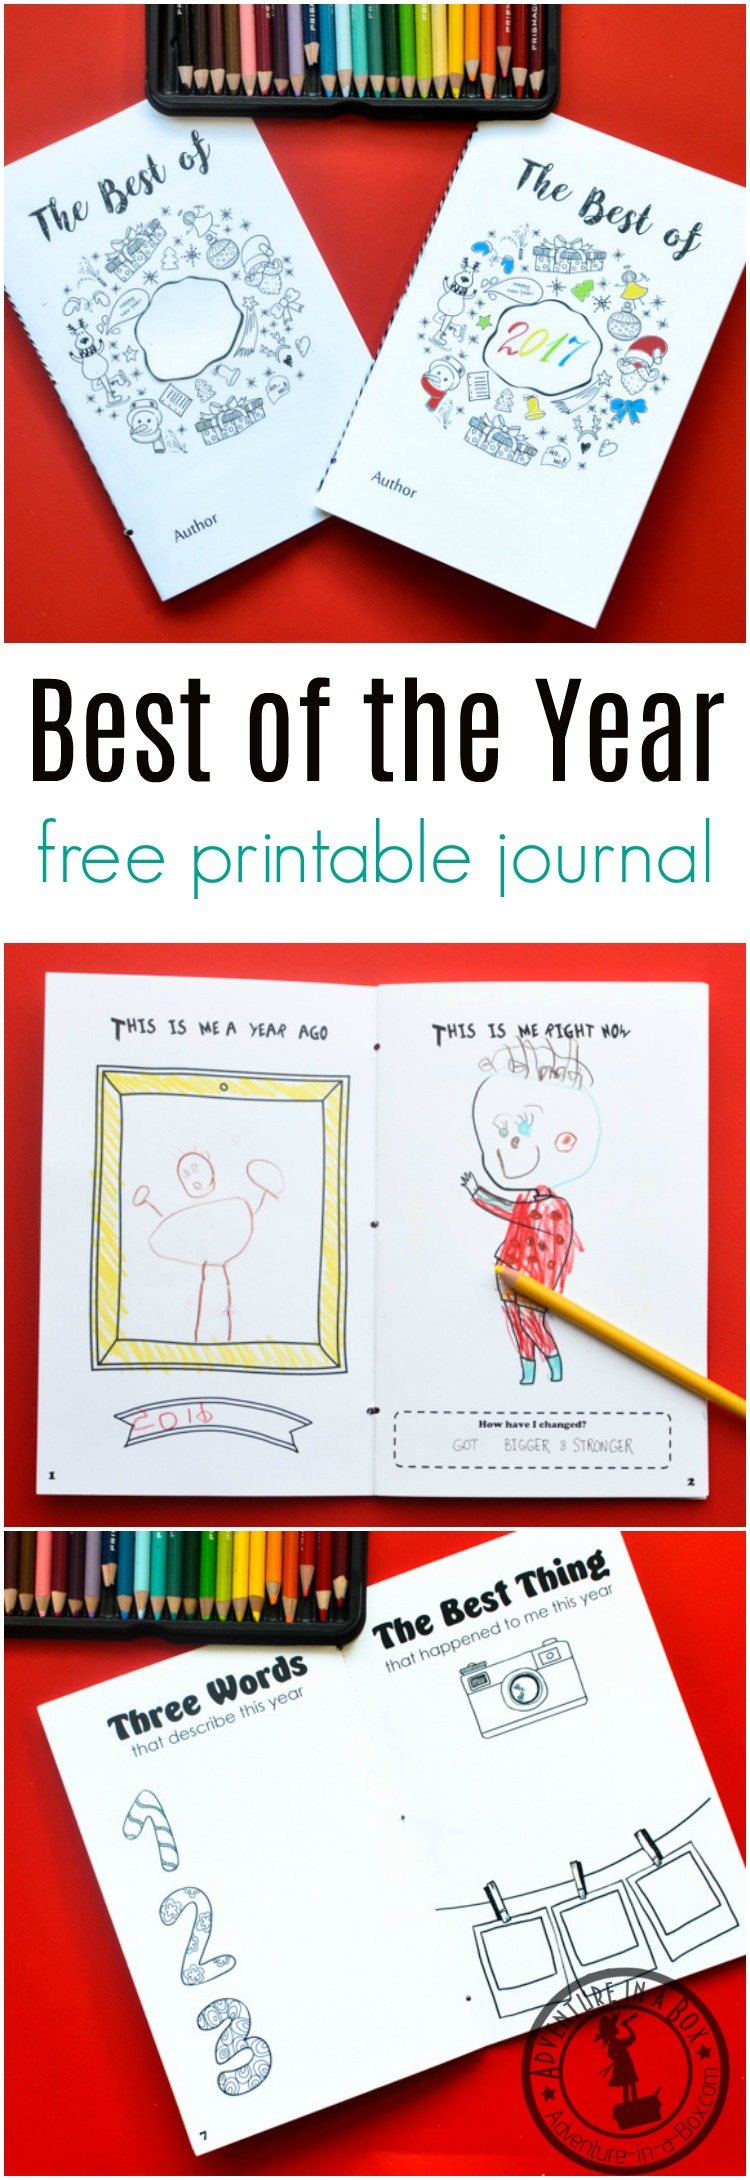 750x2180 Best Of The Year Free Printable Journal For Kids To Fill On New